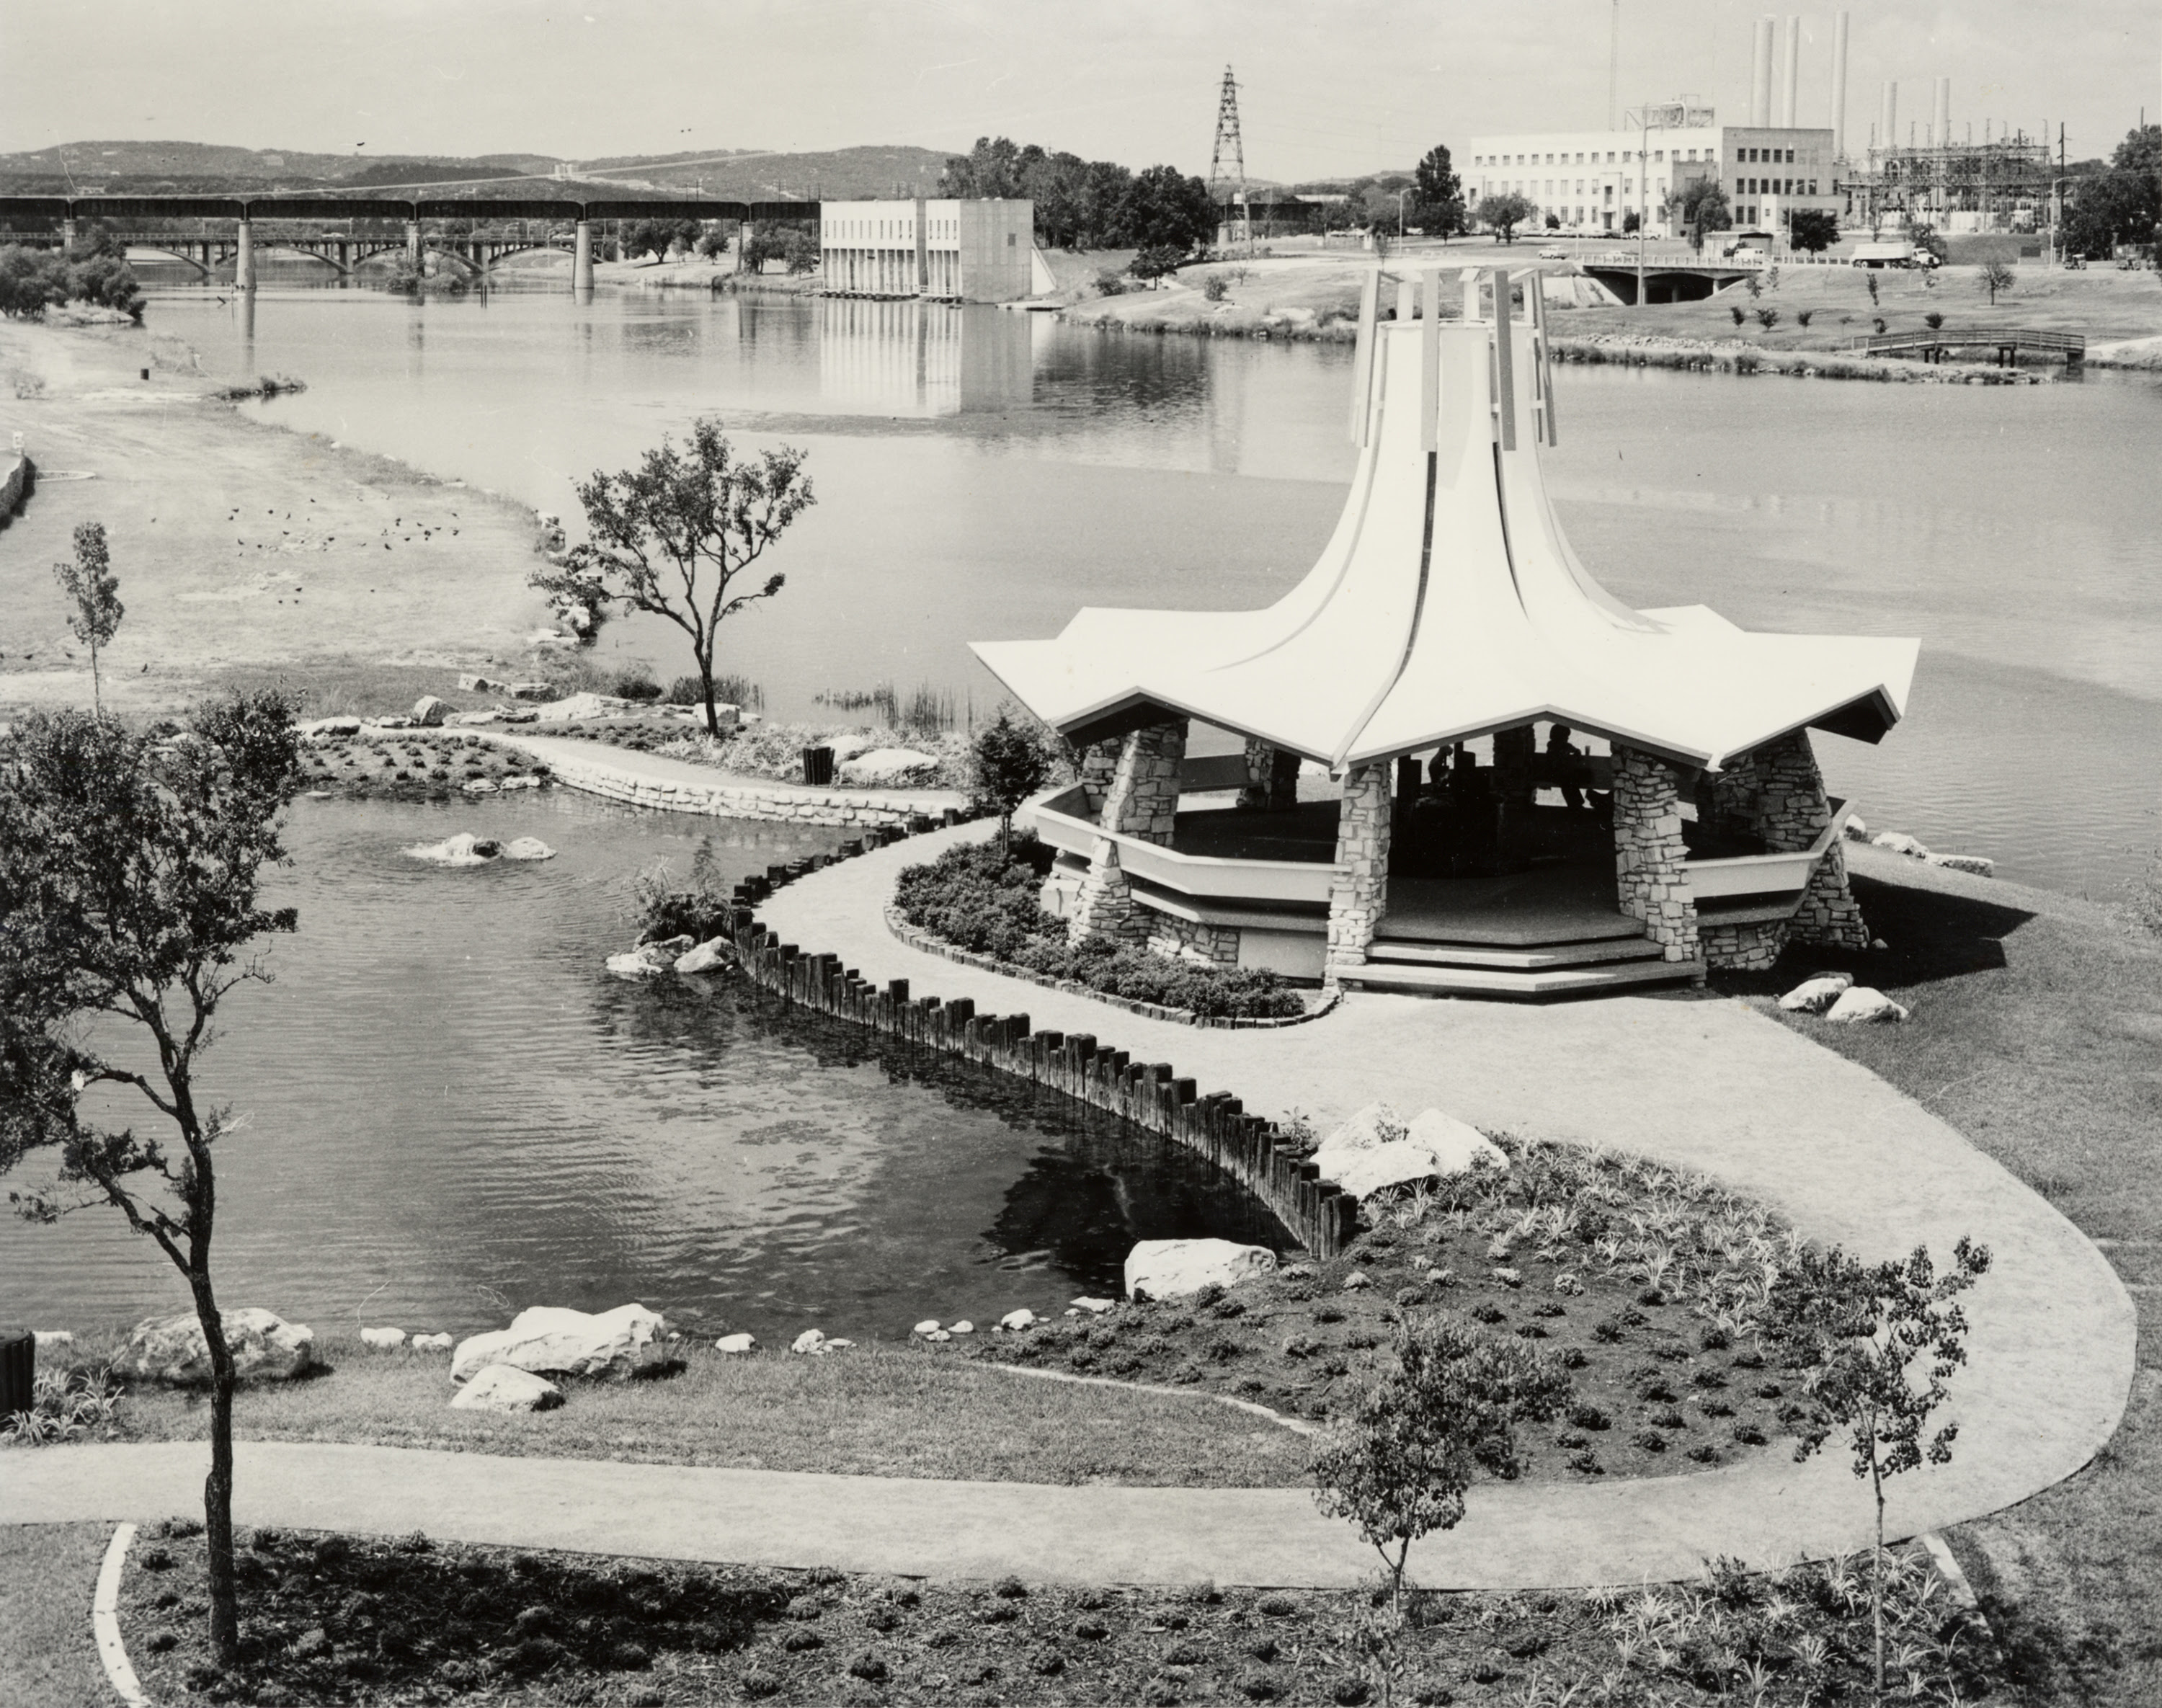 A black and white photo of a gazebo on a jetty-type land mass with a river behind it. The building has a zigzagged roof and slopes dramatically upward in a conical shape. The other shore of the lake has a few buildings on it and is in the background, along with two bridges in the distance.